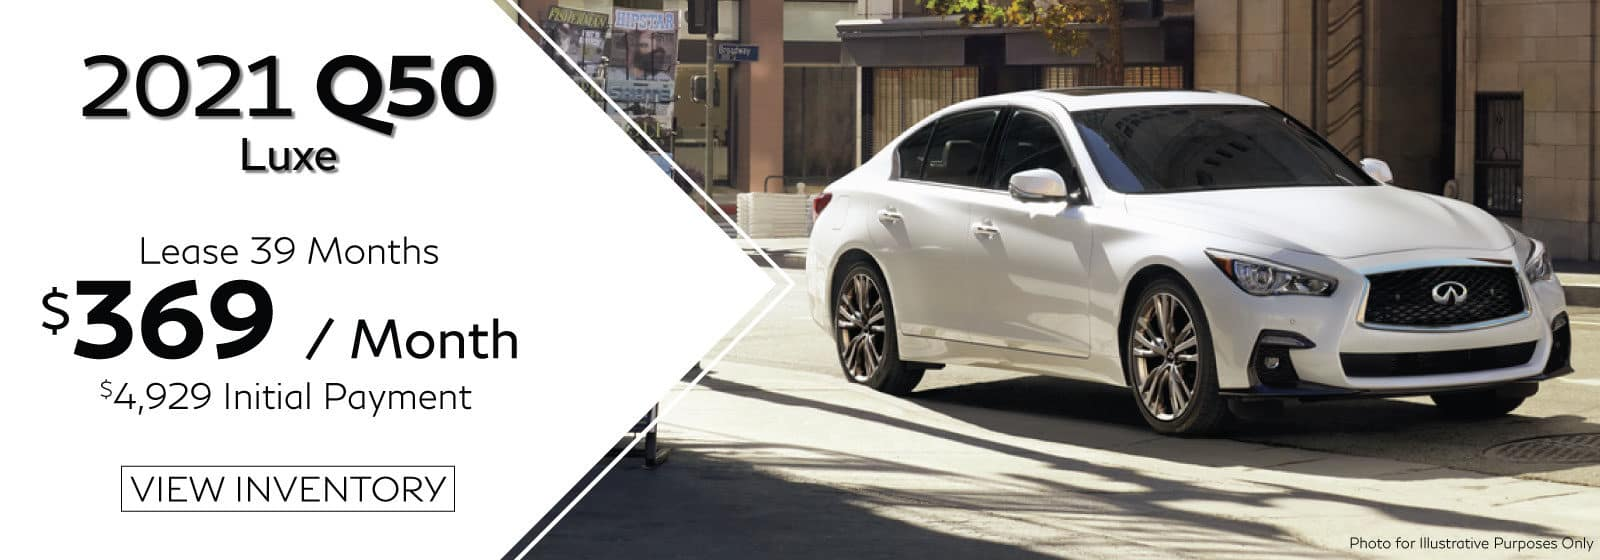 Well-qualified lessees lease a new 2021 Q50 LUXE in retailer stock for $369/Month for 39 months. $4,929 initial payment excludes taxes, title, and license. $4,929 due at lease signing (includes down payment). Offer valid only when financed through INFINITI Financial Services. Subject to residency restrictions. $42,825 MSRP includes destination and handling charge. Net capitalized cost of $34,266 includes a $700 non-refundable acquisition fee. Retailer contribution may affect actual price set by retailer. Monthly payments total $14,391 at lease end, purchase for $22,697, plus purchase option fee up to $300 (except KS & WI), plus tax, or pay excess wear & use plus $0.25 per mile for mileage over 10,000 miles per year. Disposition fee due at lease end. No security deposit required. Must take delivery from new retailer stock. Ends 07/06/2021. Example VIN JN1EV7BP0MM700743